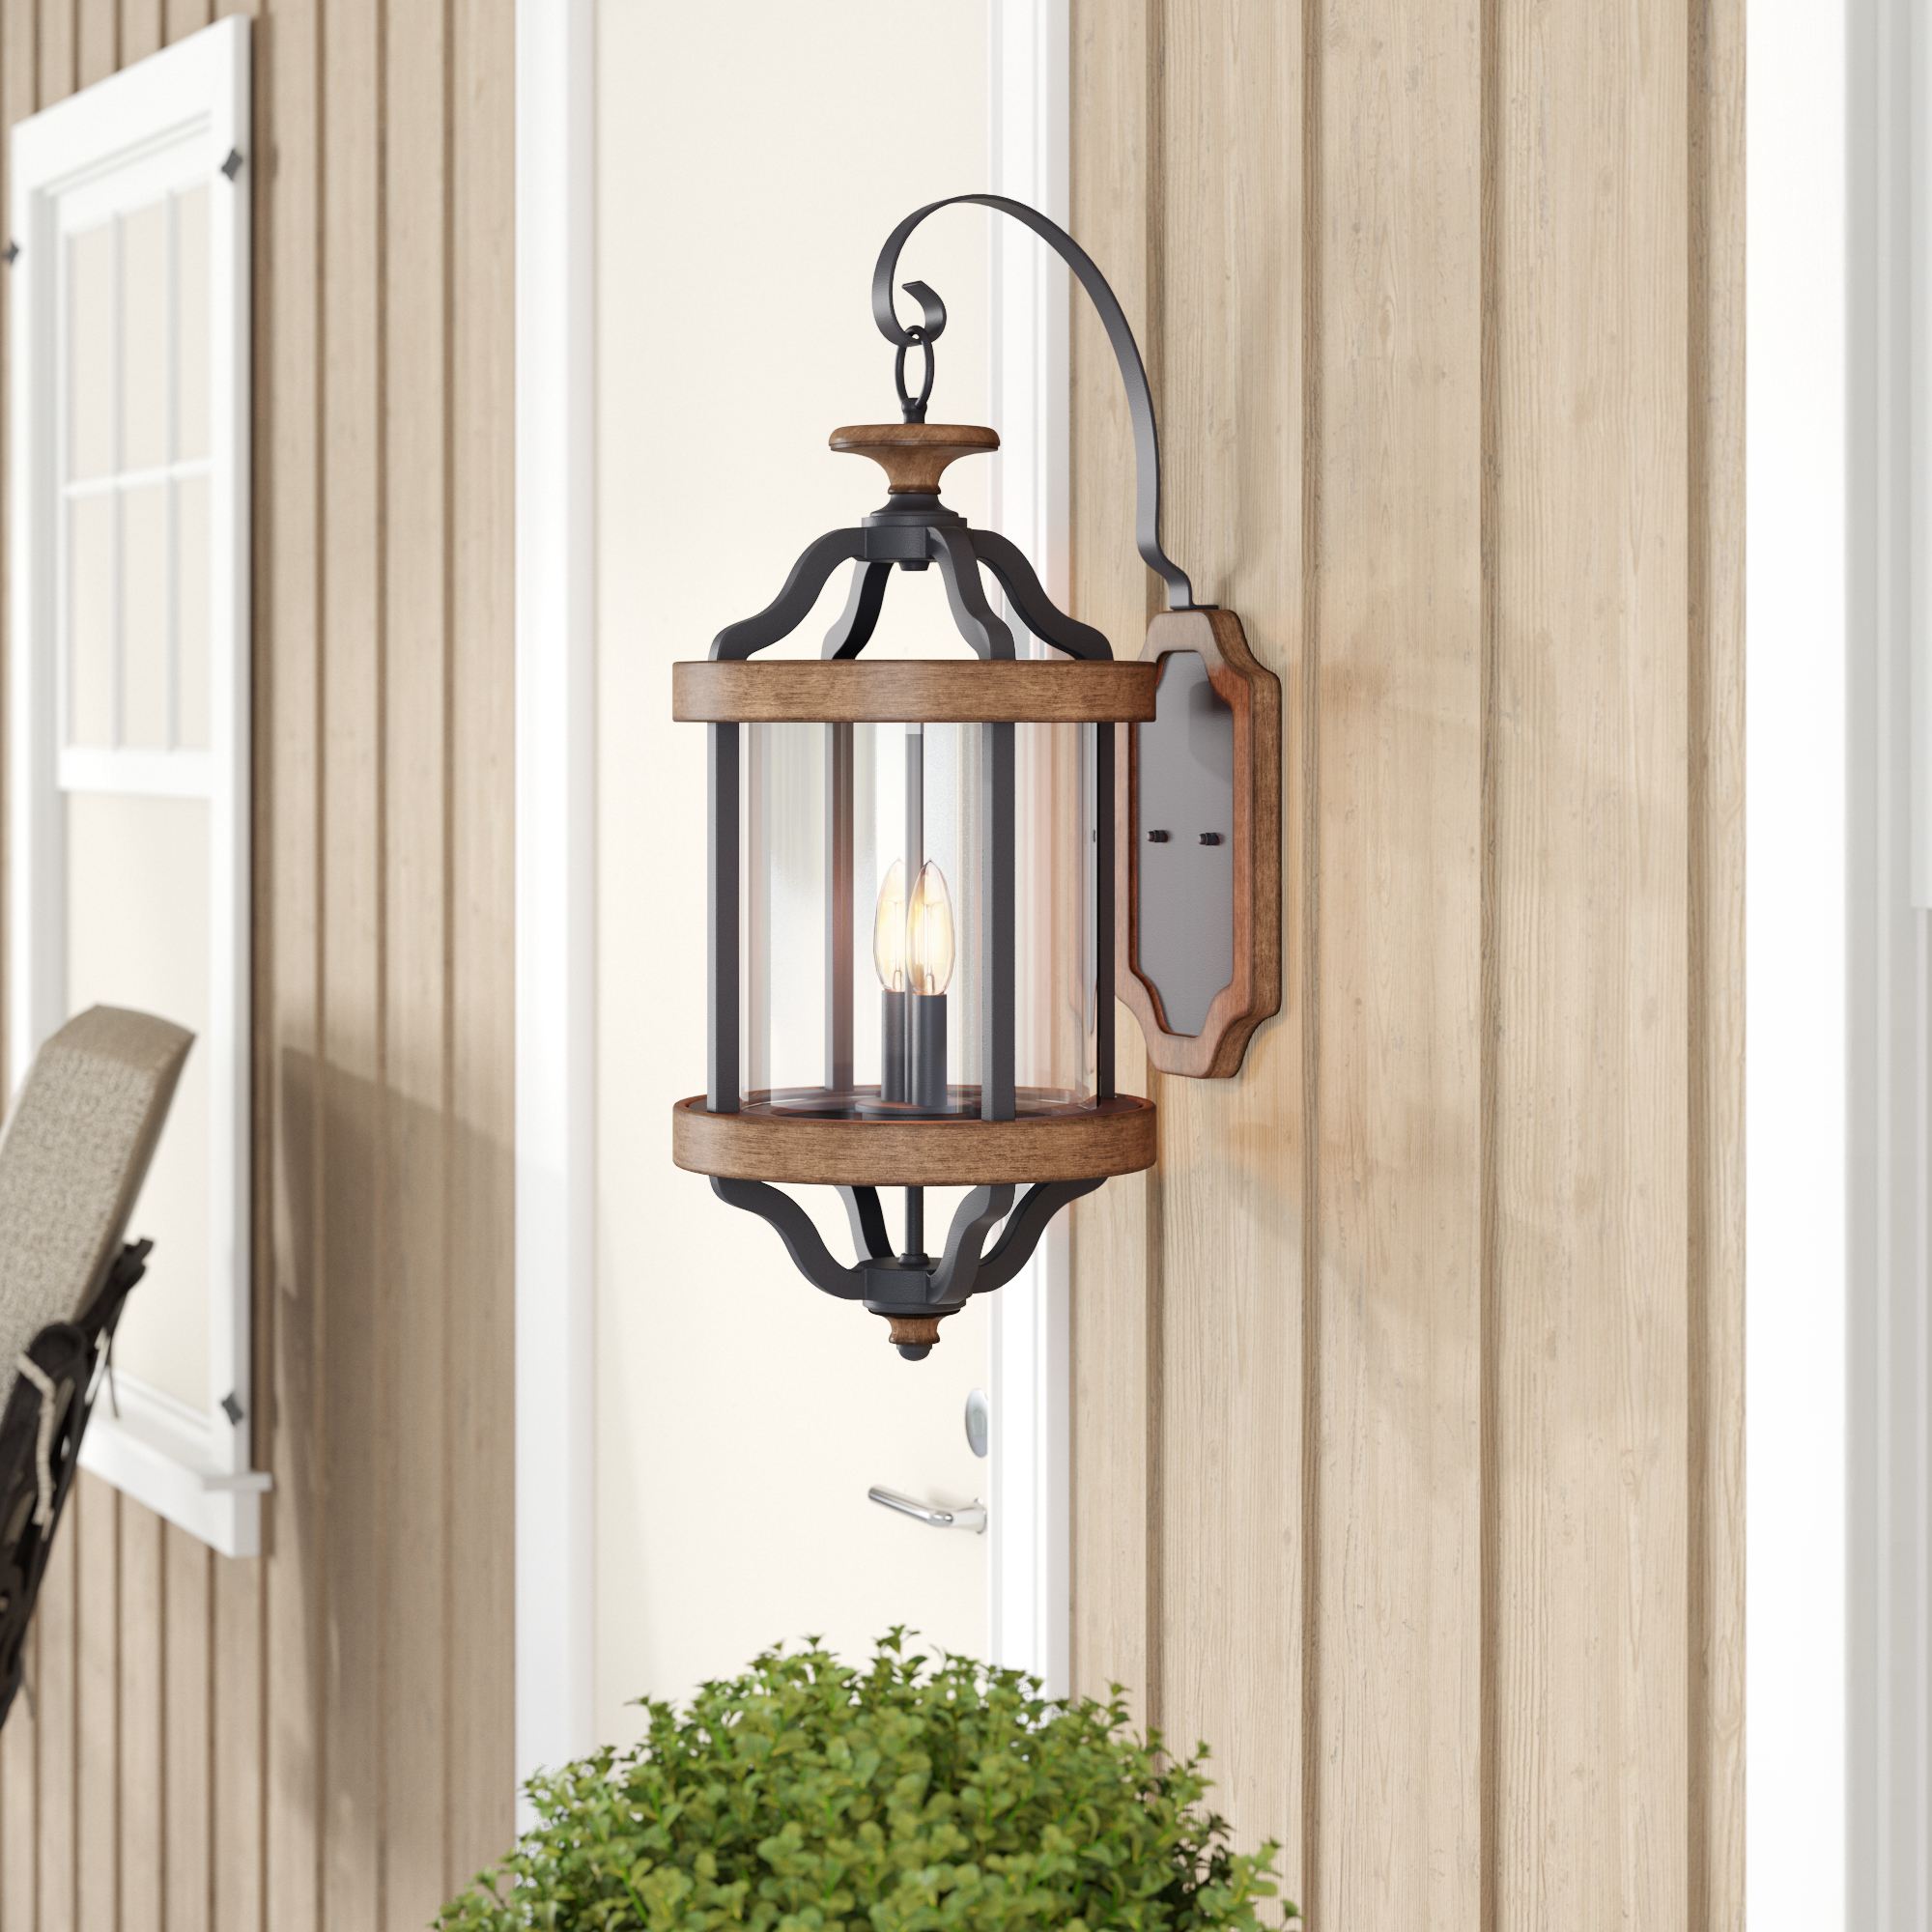 Farmhouse Rustic Outdoor Lighting Collections Birch Lane